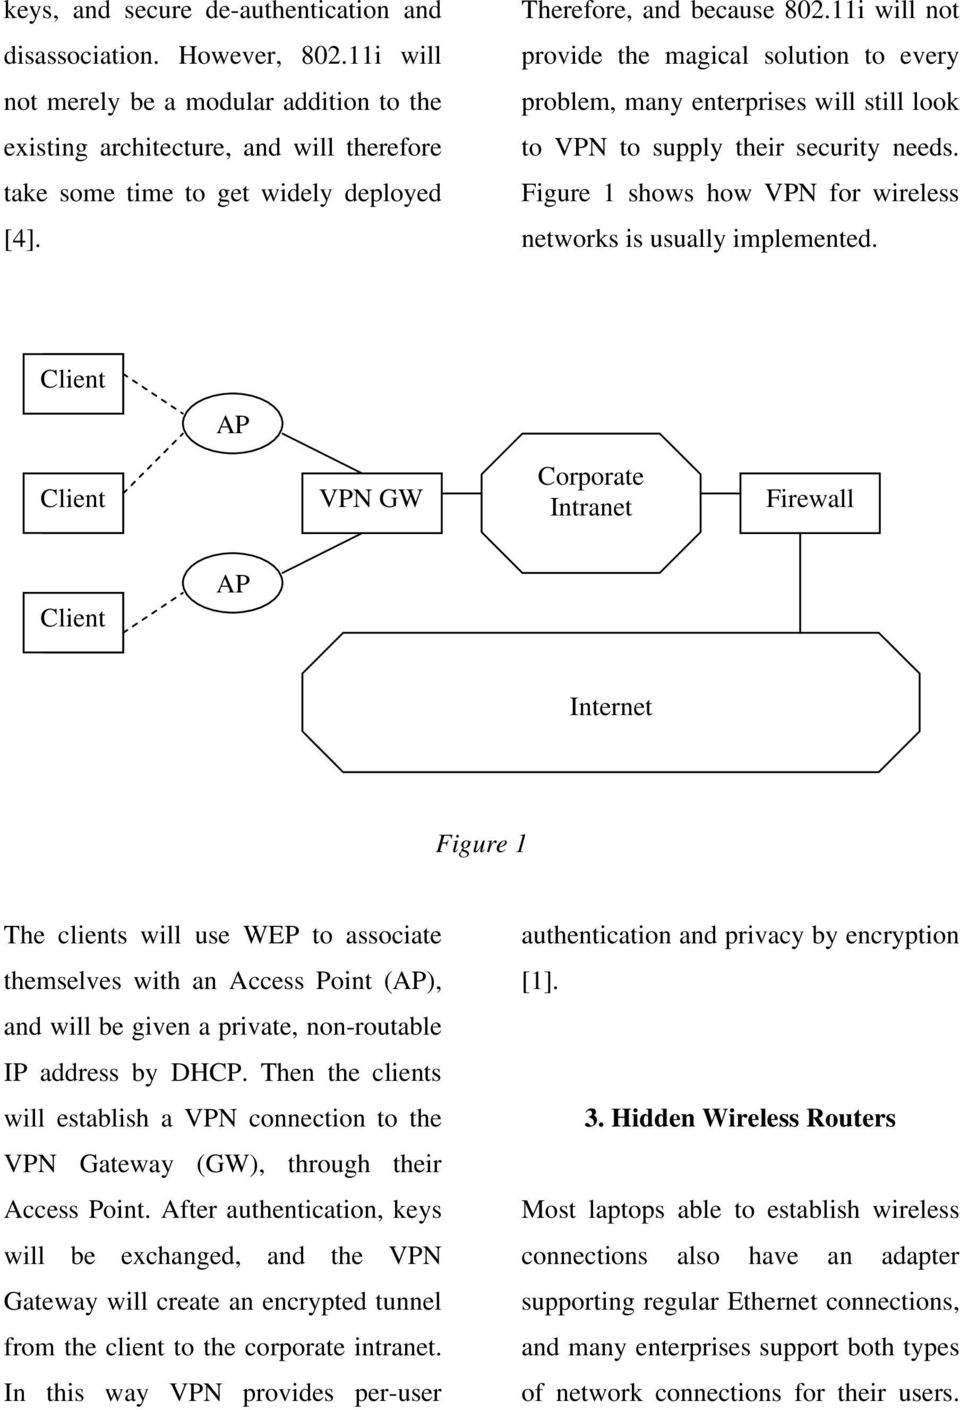 11i will not provide the magical solution to every problem, many enterprises will still look to VPN to supply their security needs. Figure 1 shows how VPN for wireless networks is usually implemented.